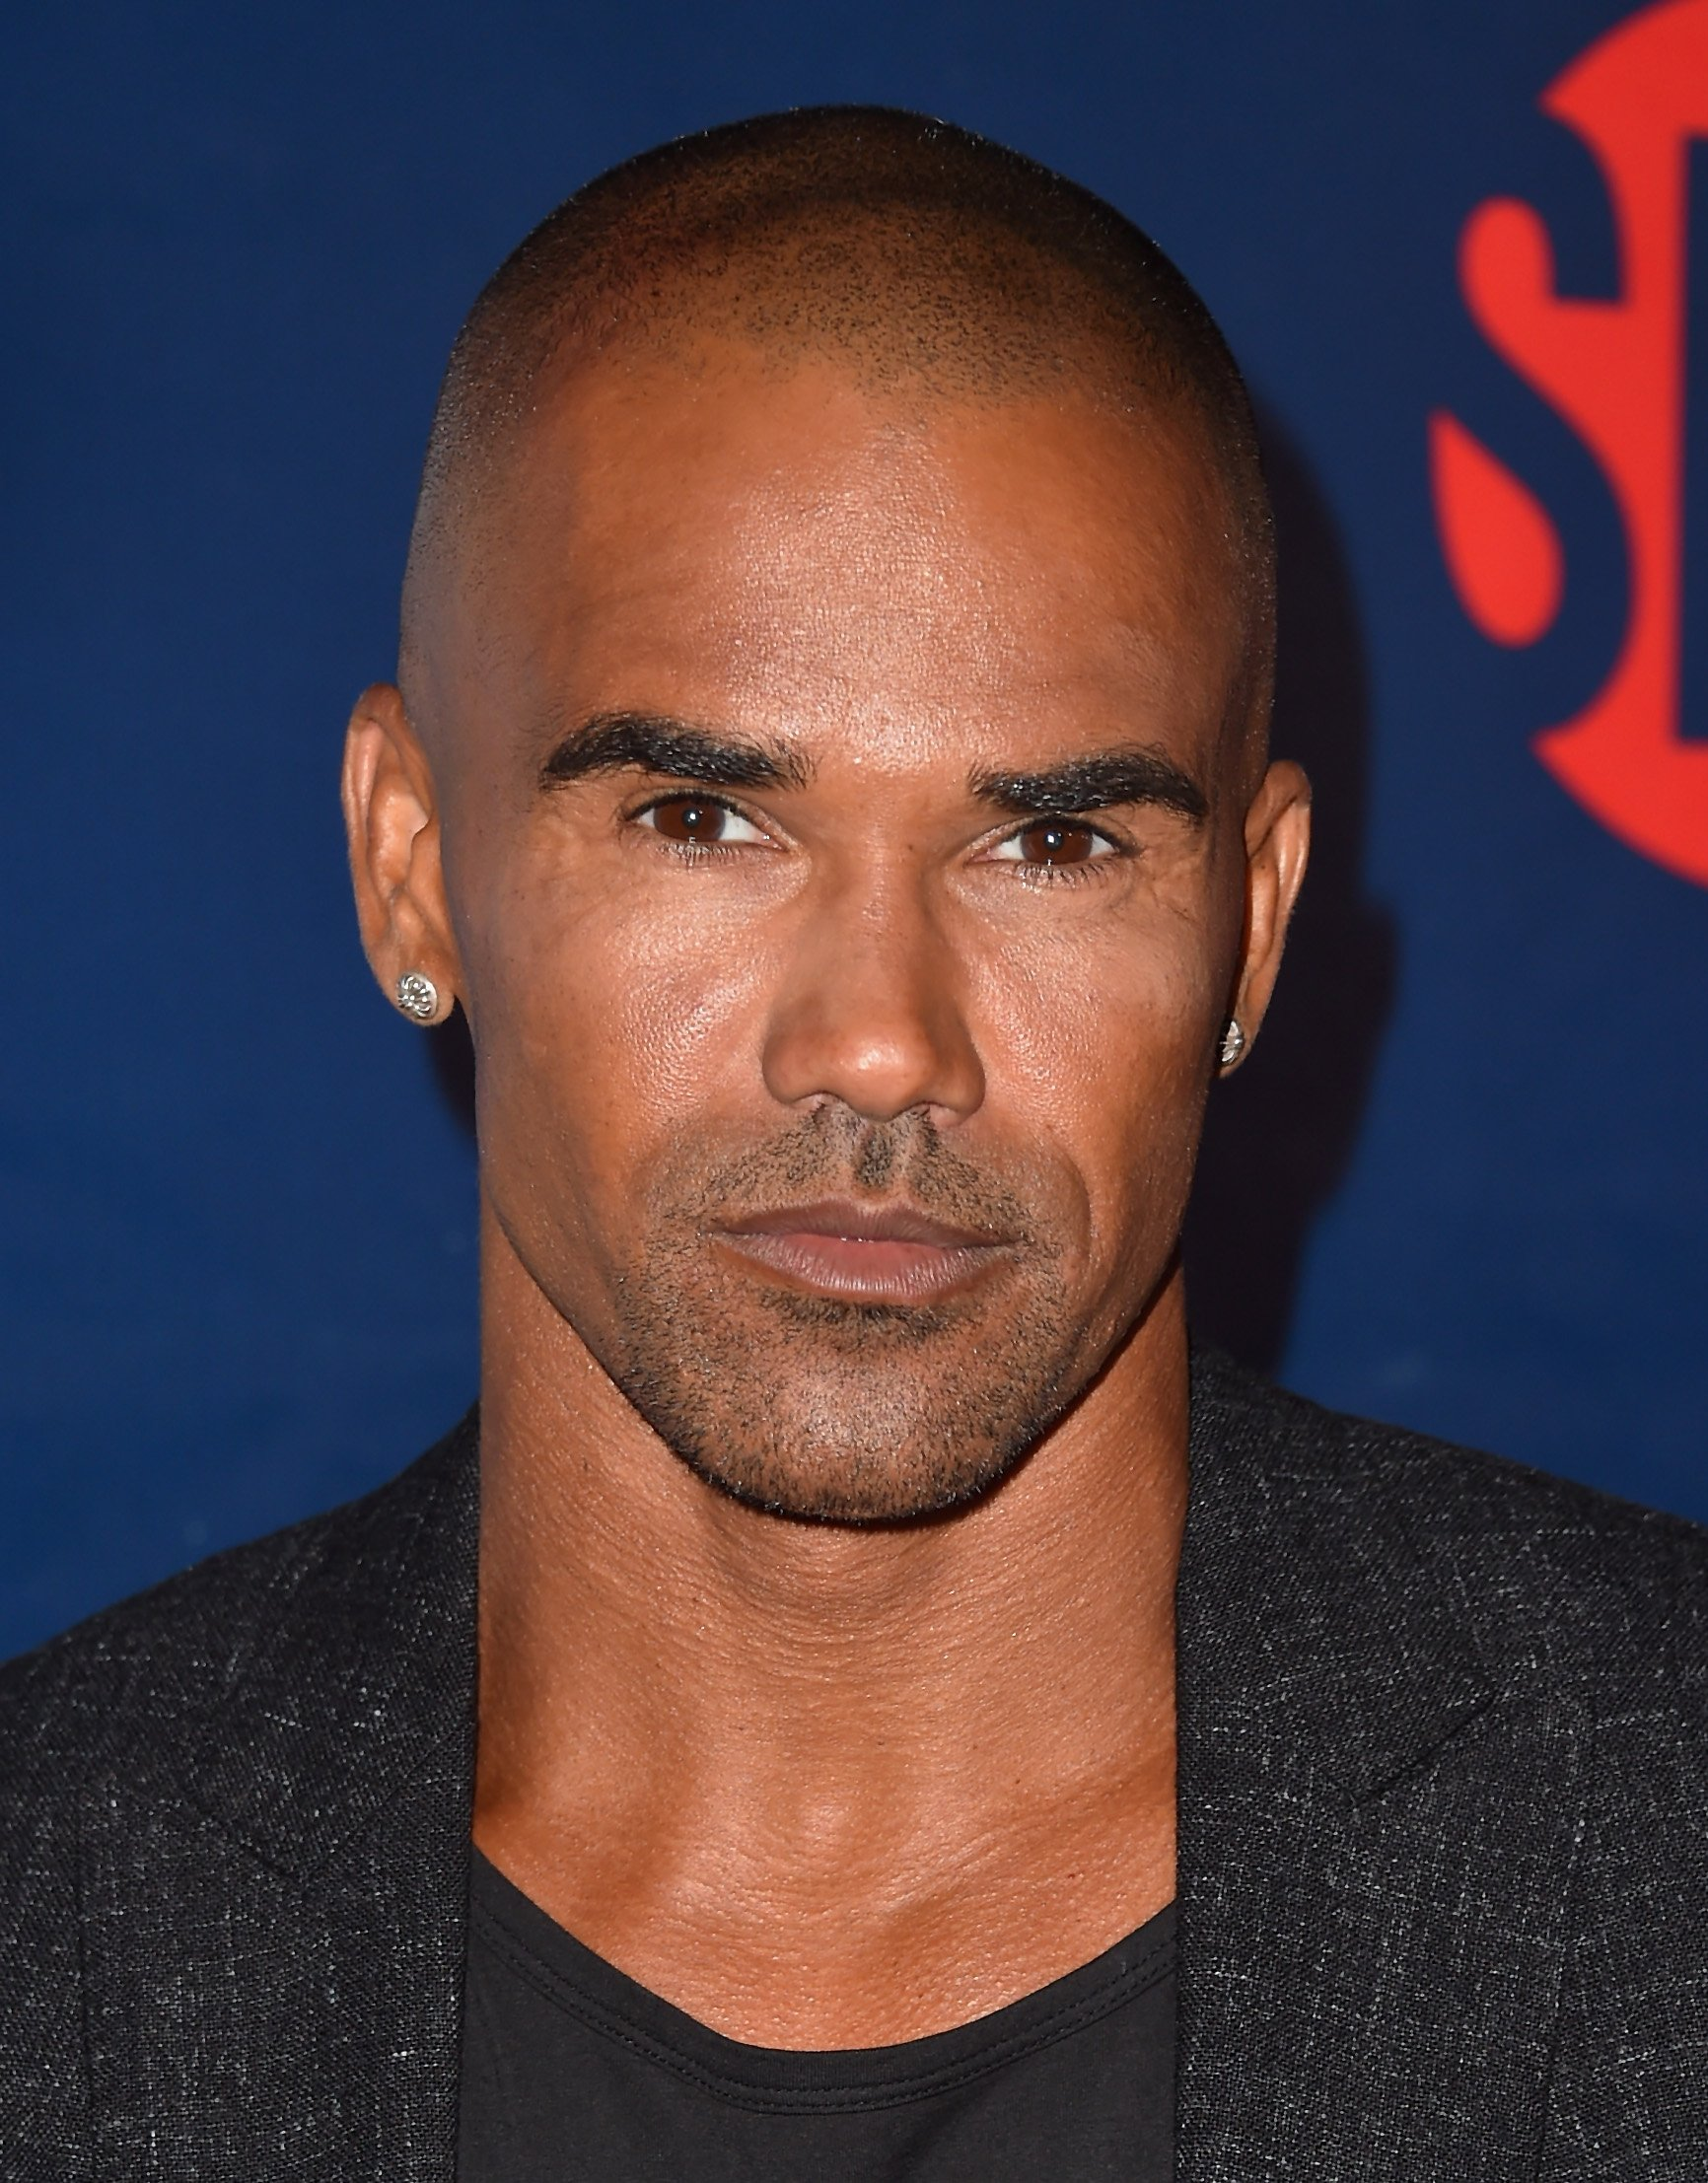 Shemar Moore during CBS' 2015 Summer TCA party. | Source: Getty Images